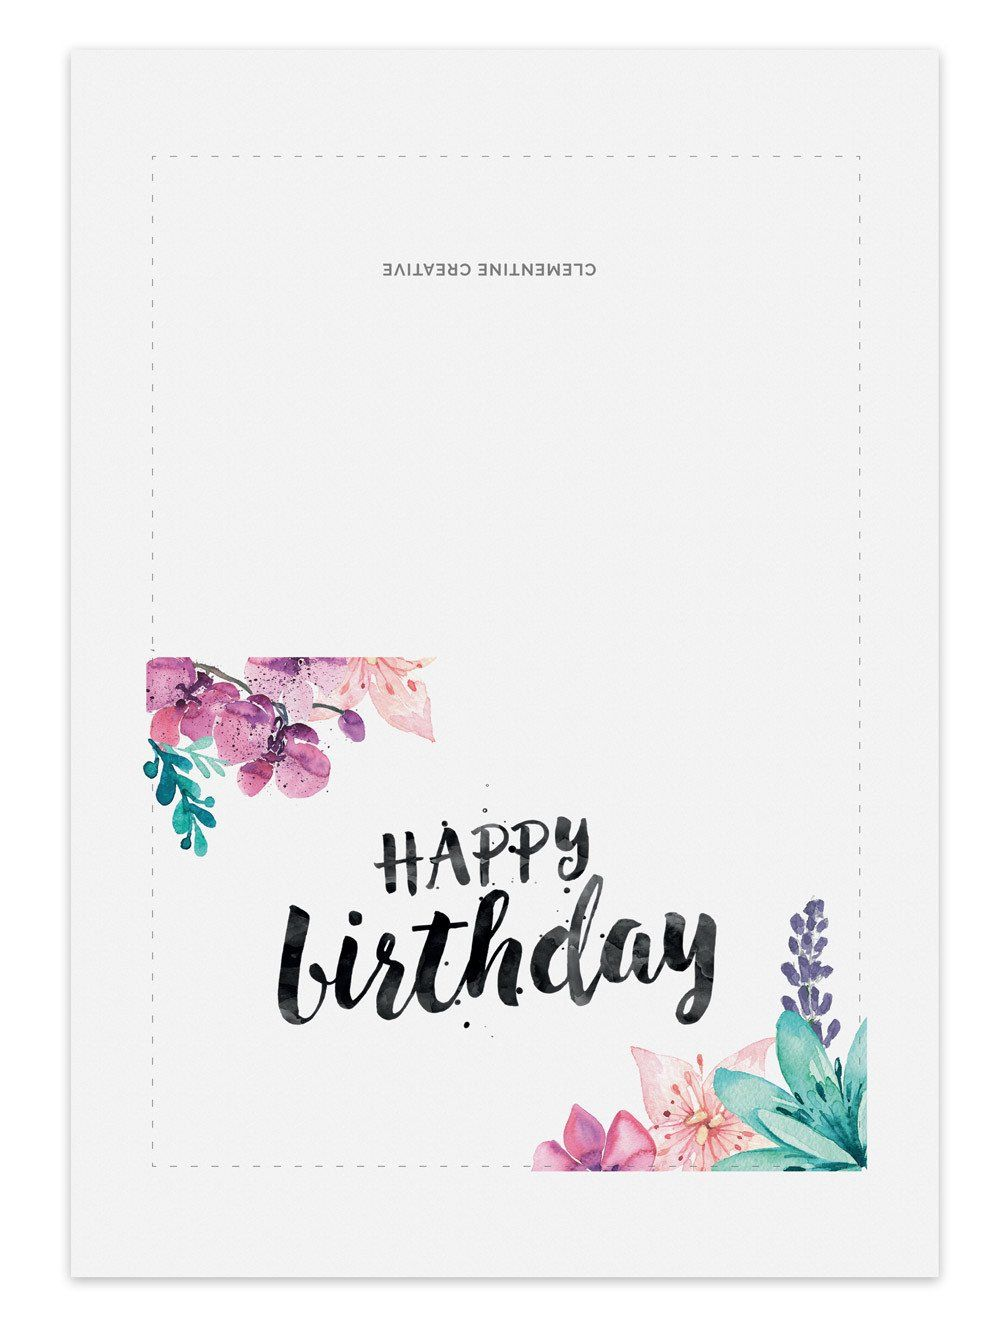 Surprise Her With This Beautiful Spring Blossoms Birthday Card